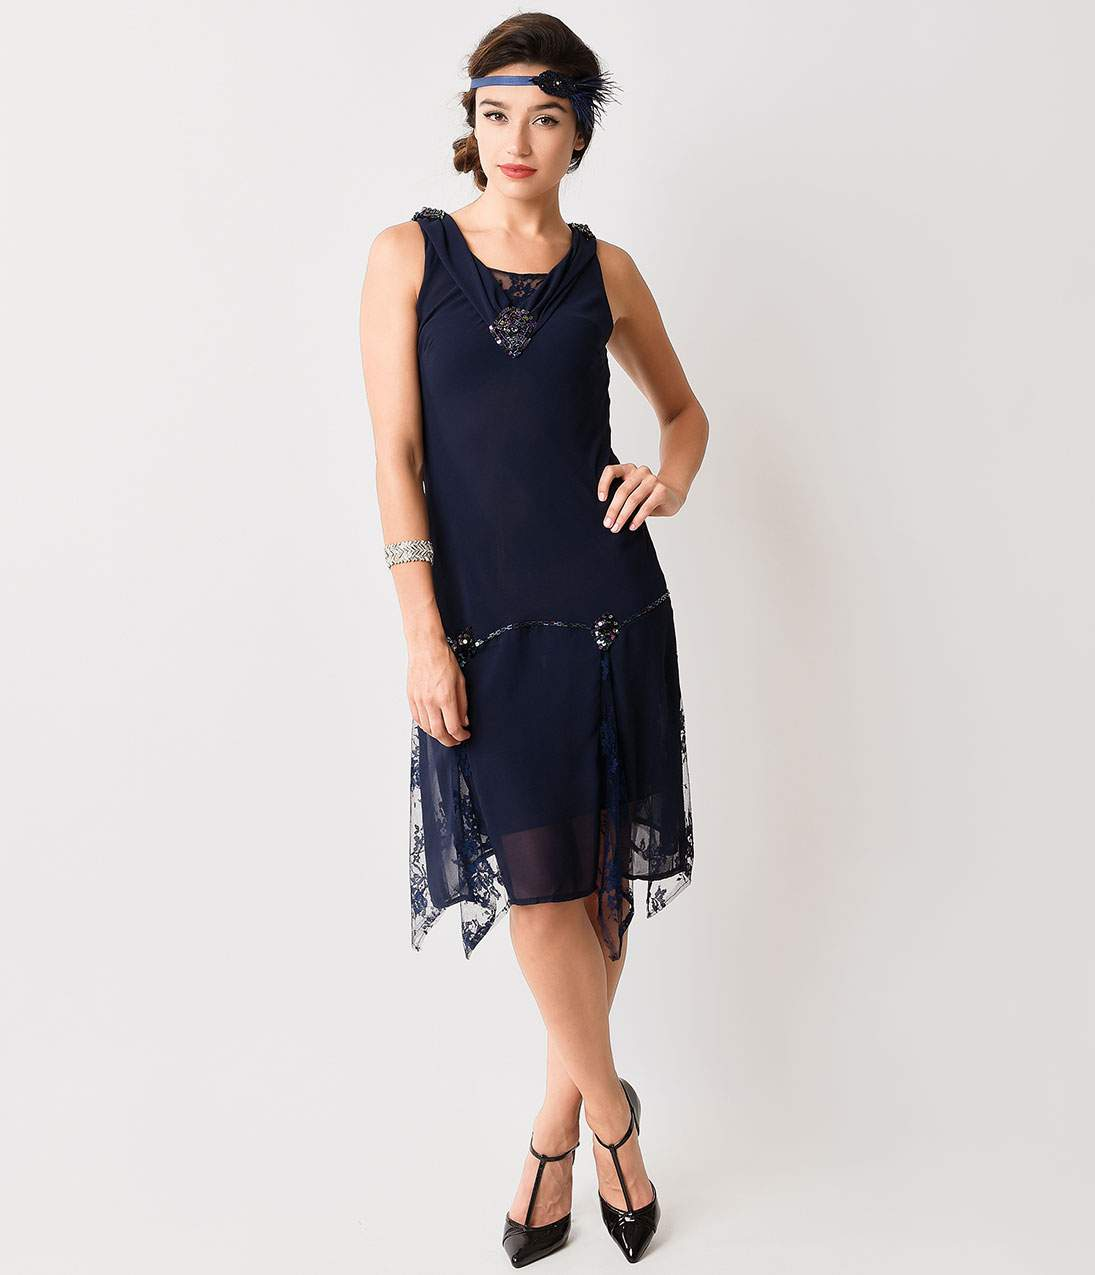 Roaring 20s Costumes- Flapper Costumes, Gangster Costumes Unique Vintage Navy Hemingway Flapper Dress $74.00 AT vintagedancer.com